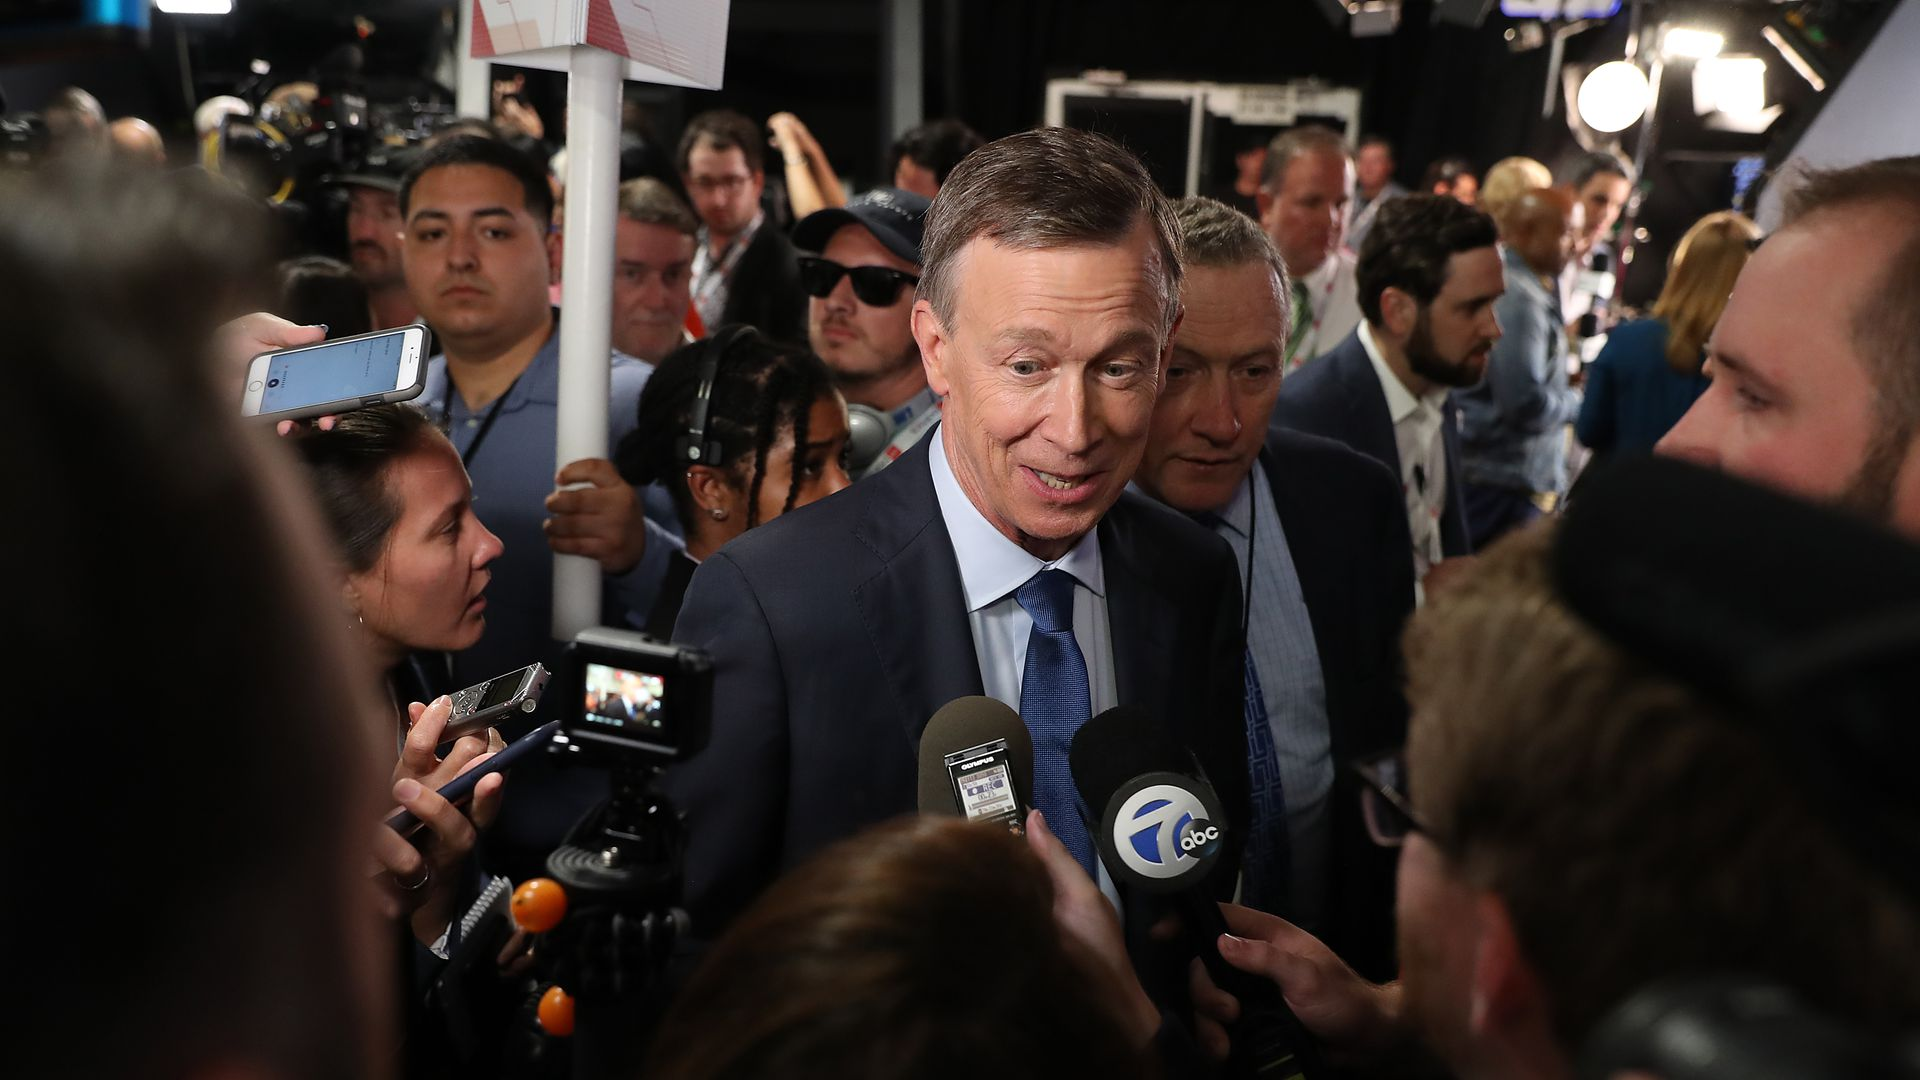 Democratic group wants Hickenlooper to drop out of the 2020 race and run for Senate instead